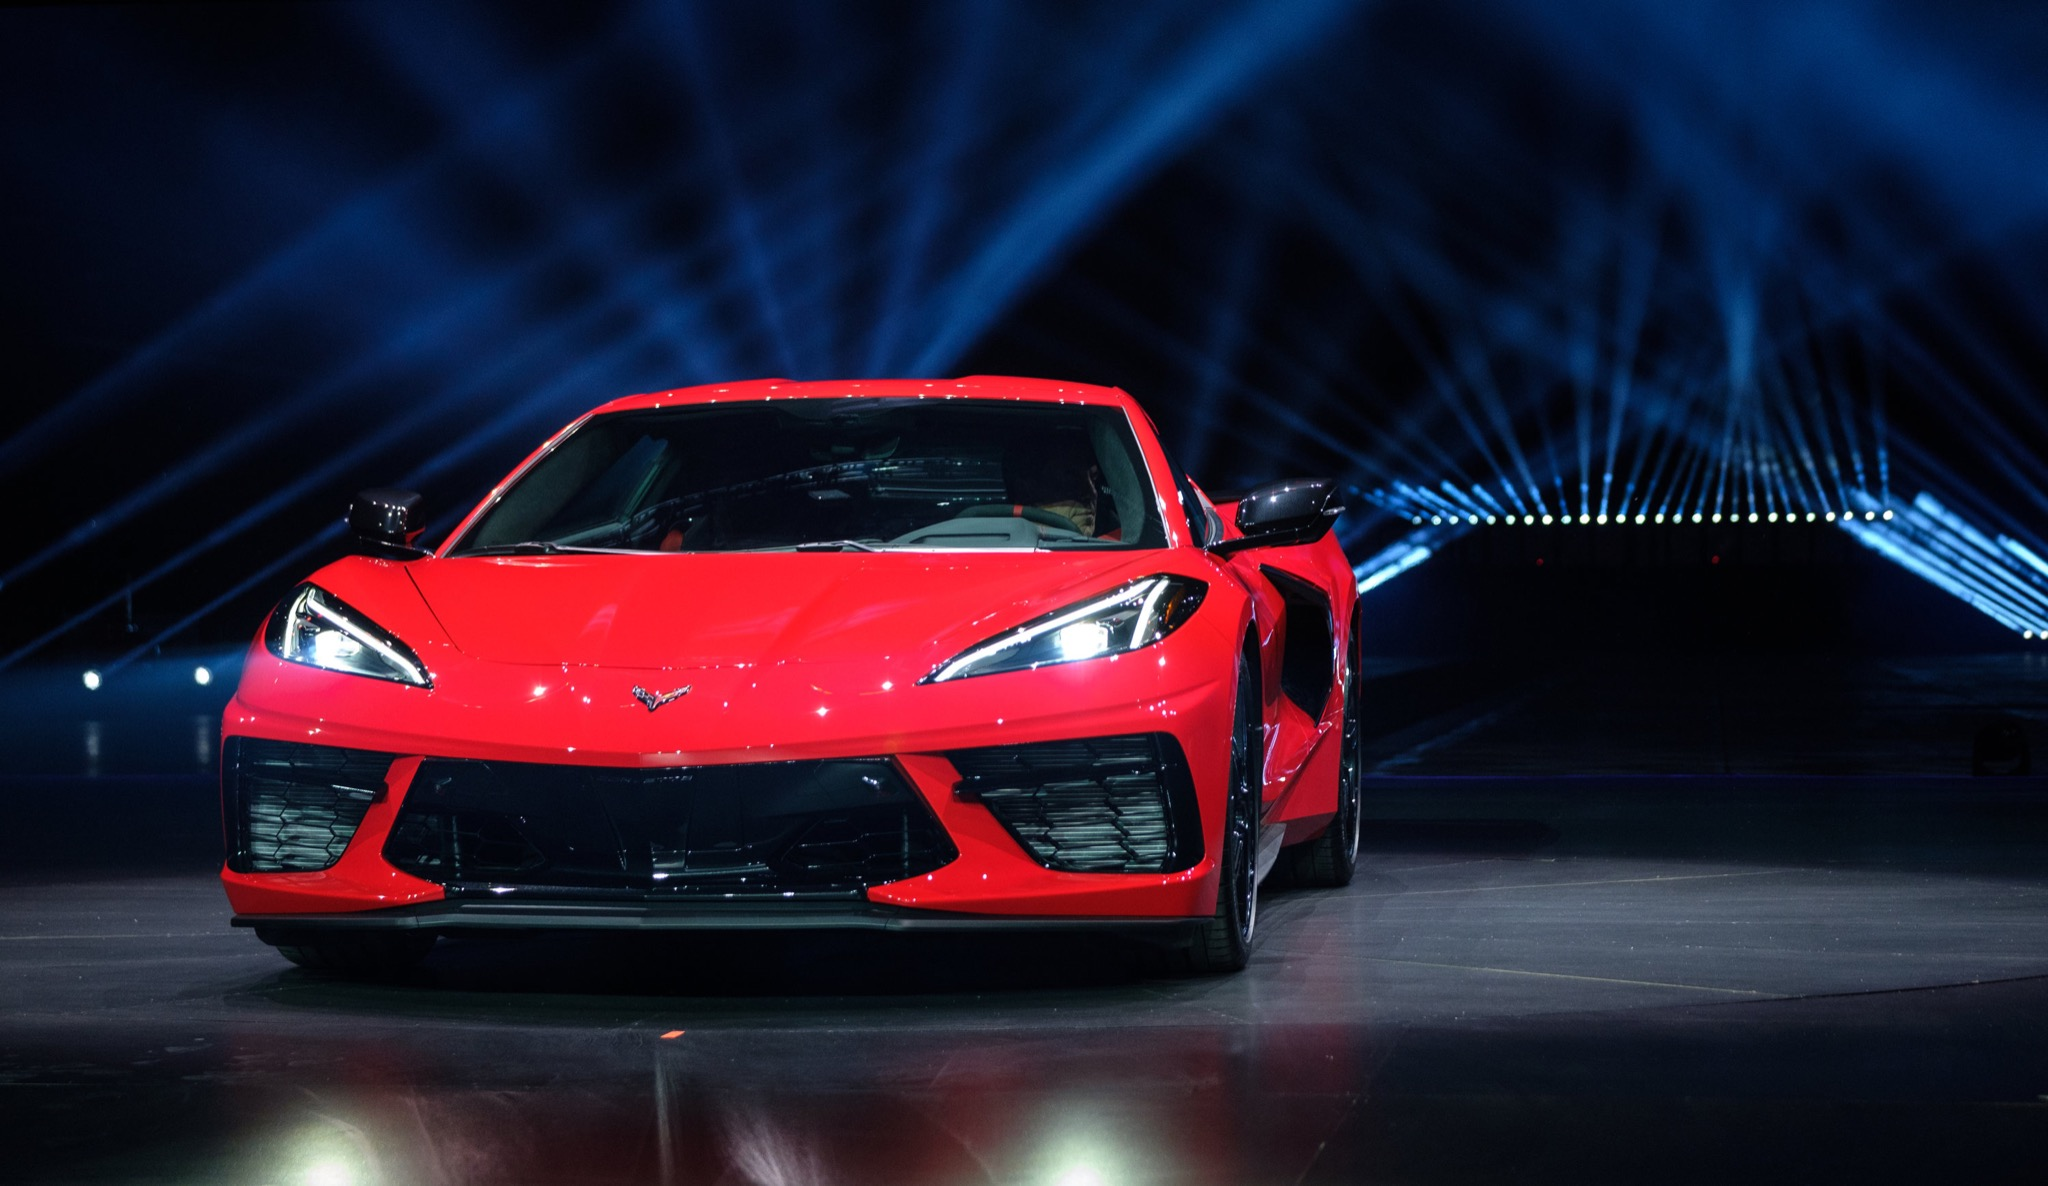 The 2020 Corvette is Chevy's first American supercar